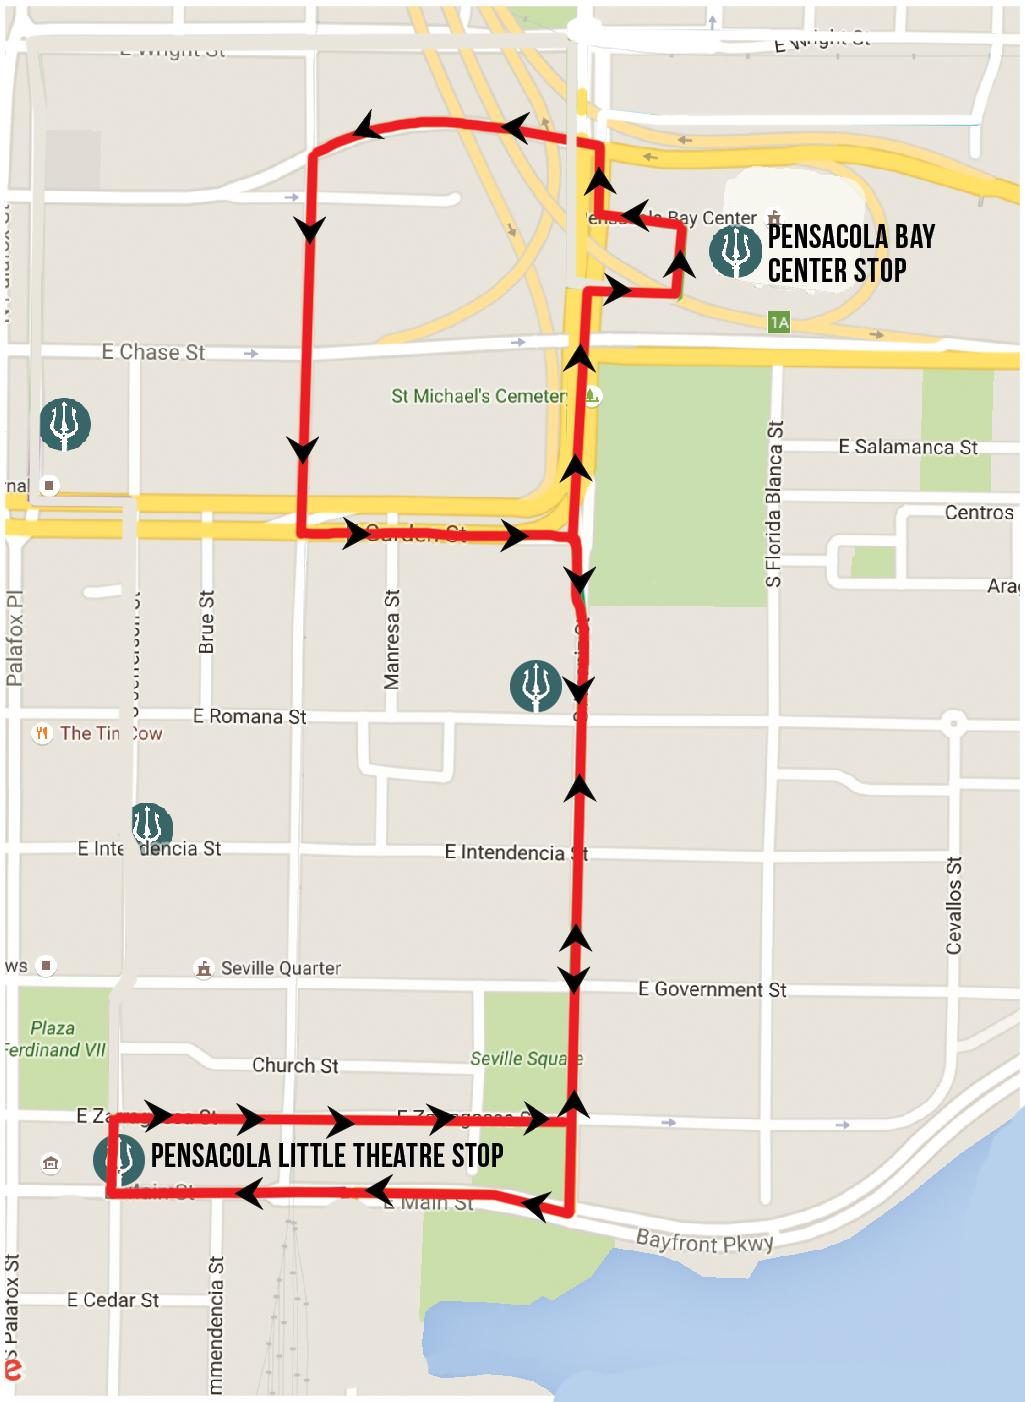 PLT express route. Source: Pensacon